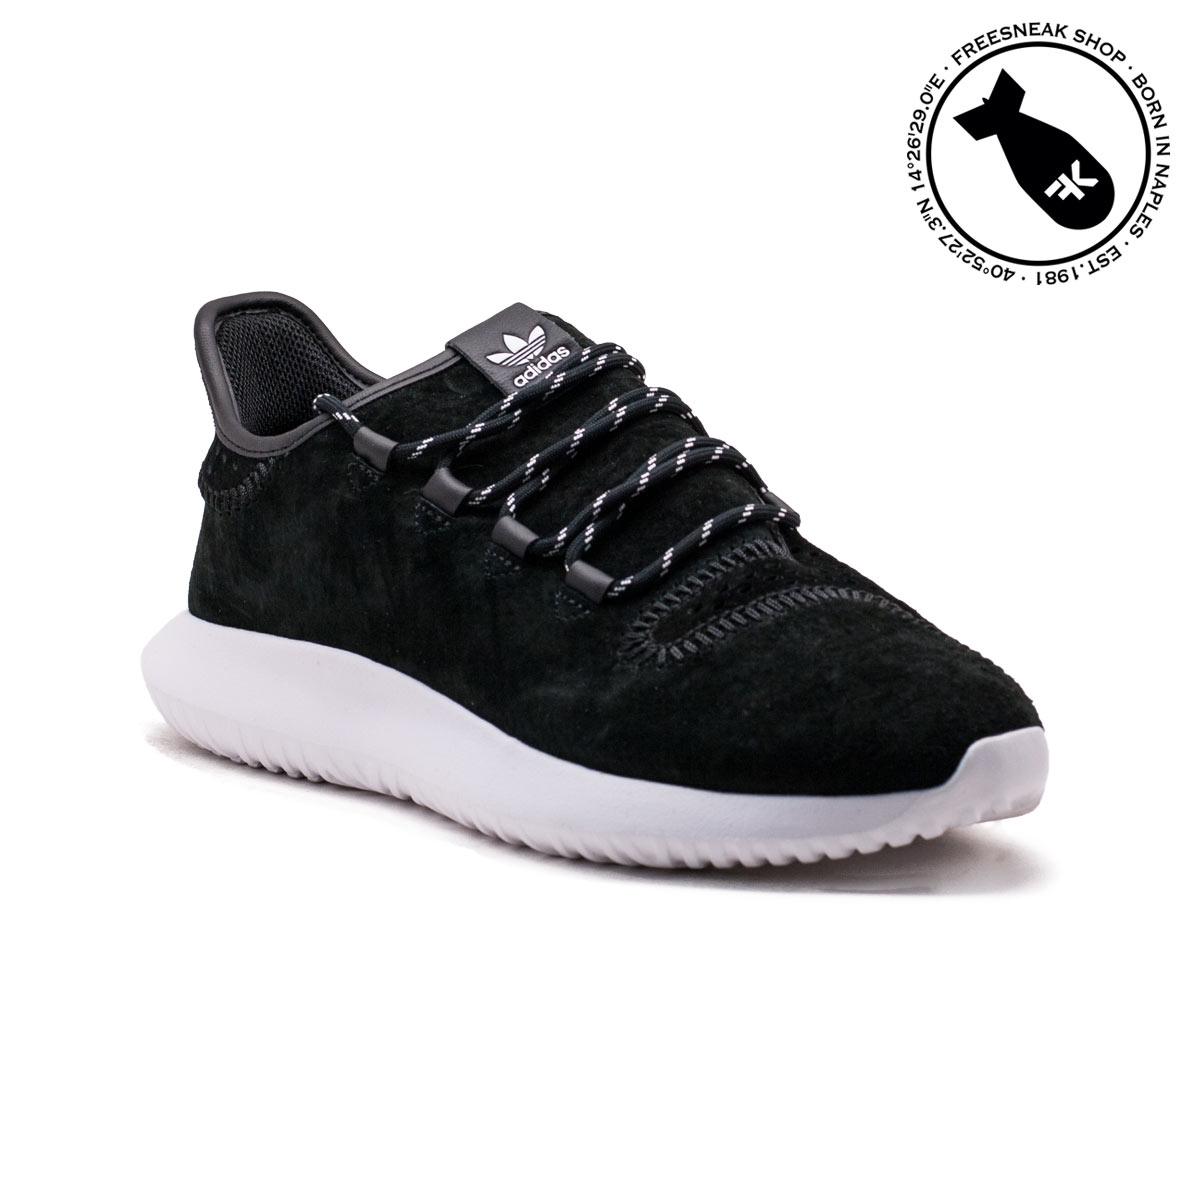 the best attitude 5b6c8 2fab3 Adidas | Tubular Shadow Suede Black | CQ0933